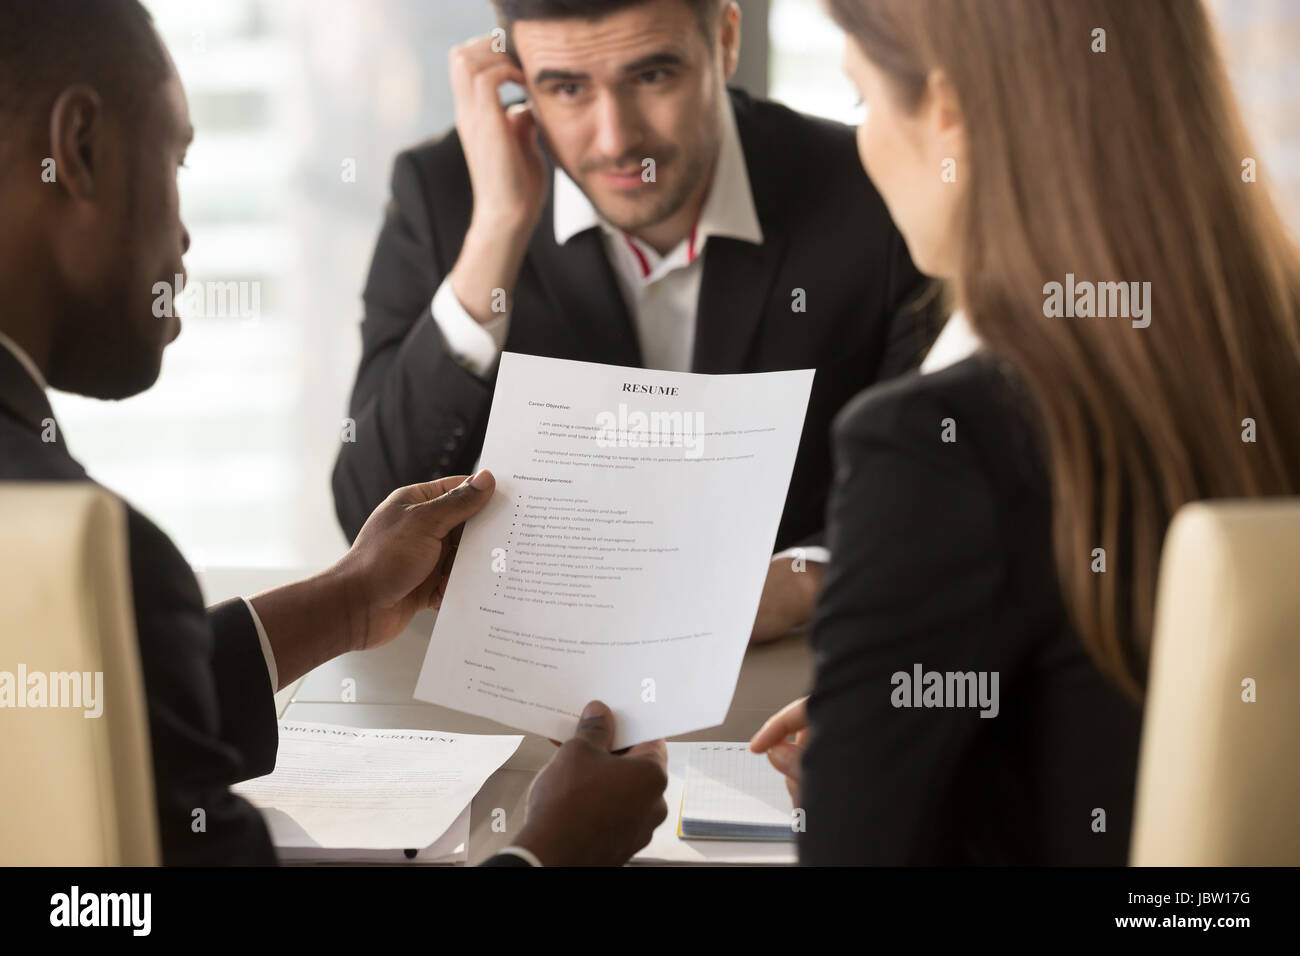 Employers or recruiters holding reviewing bad poor cv of unemployed worried nervous applicant waiting for result, - Stock Image